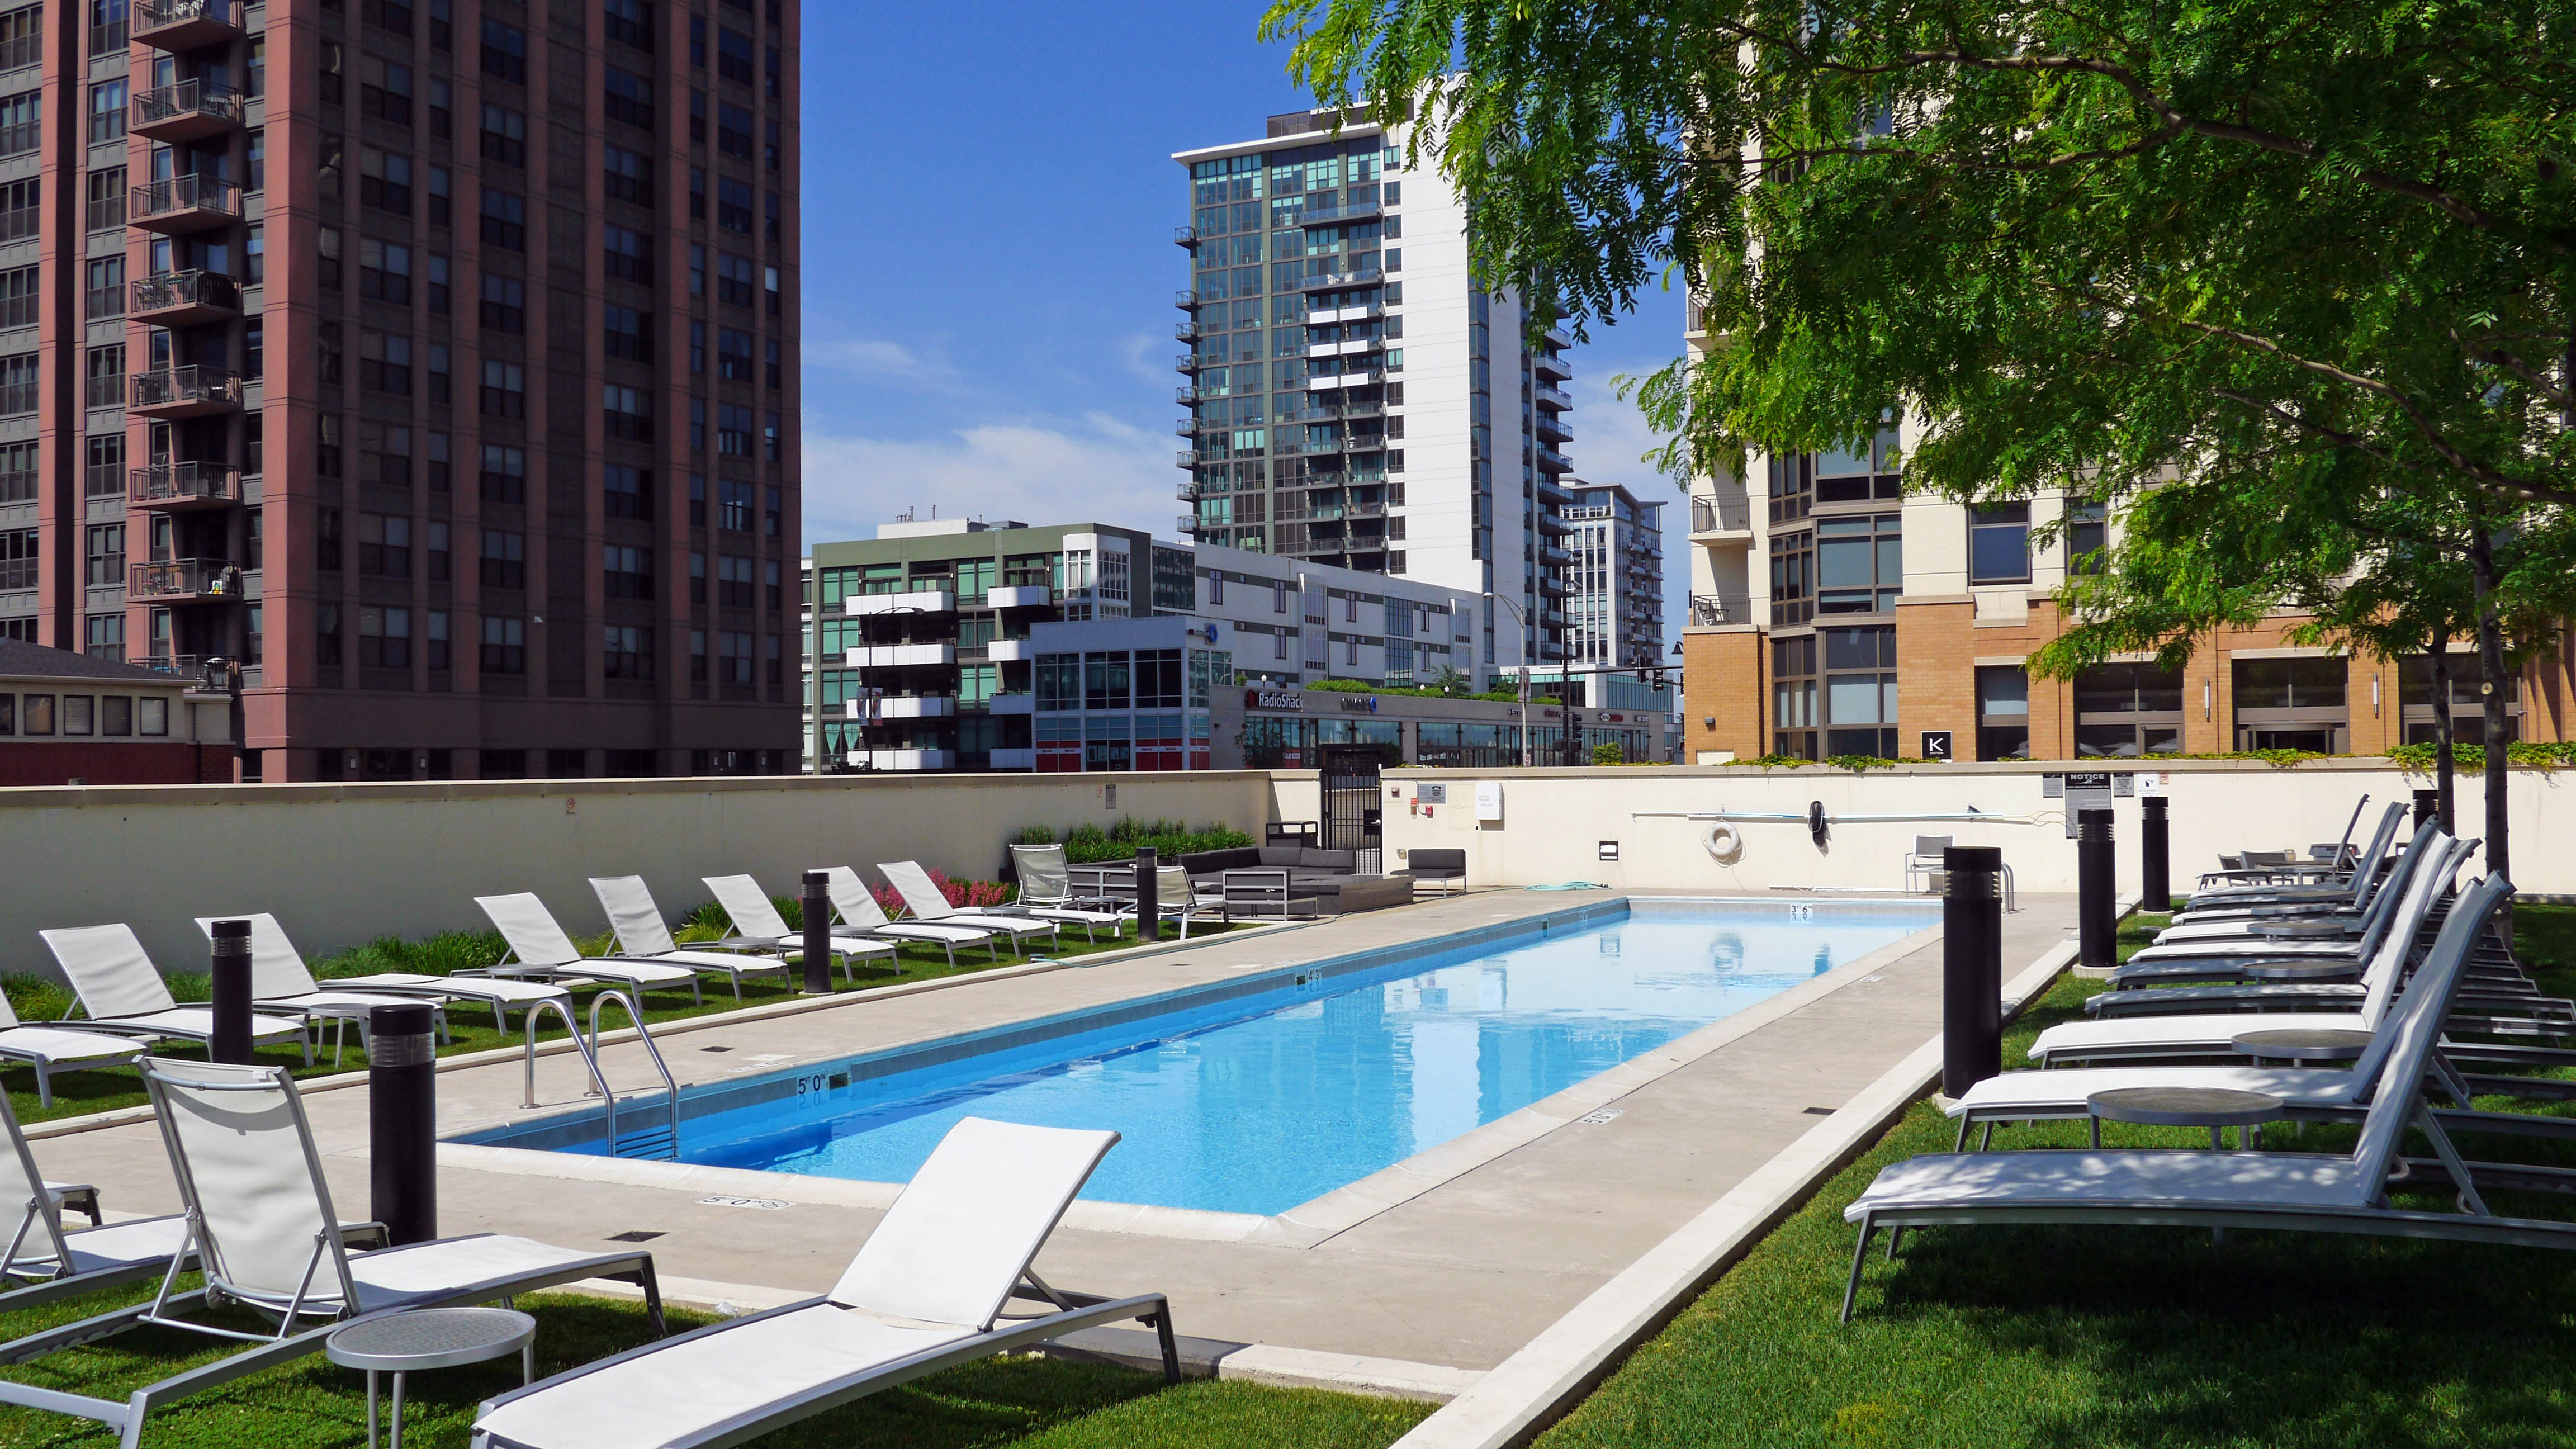 Luxury Apartments Pool. Comfort  Echelon apartments offer luxury in a prime location YoChicago